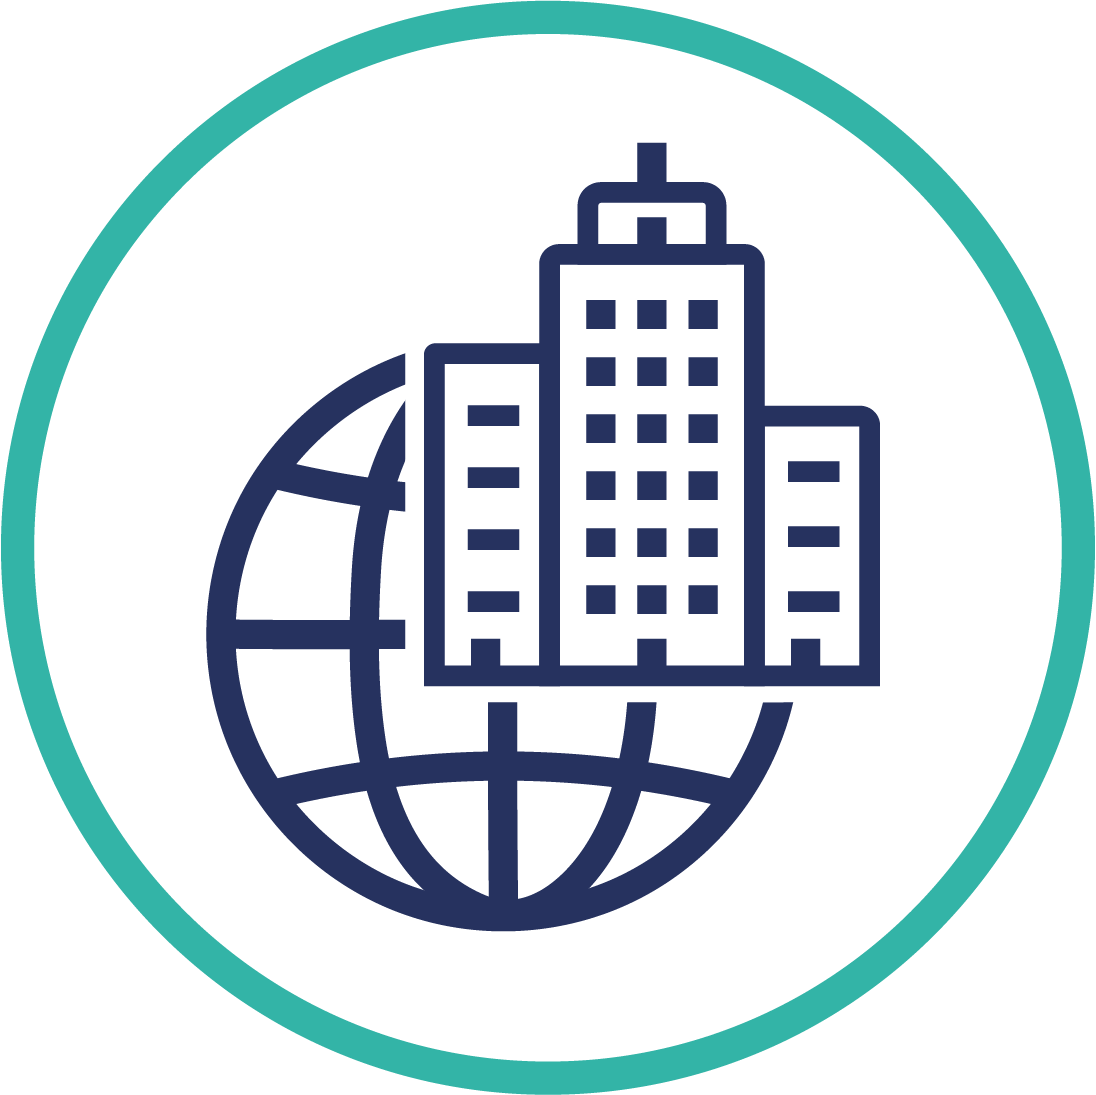 Global hotel industry planet icon